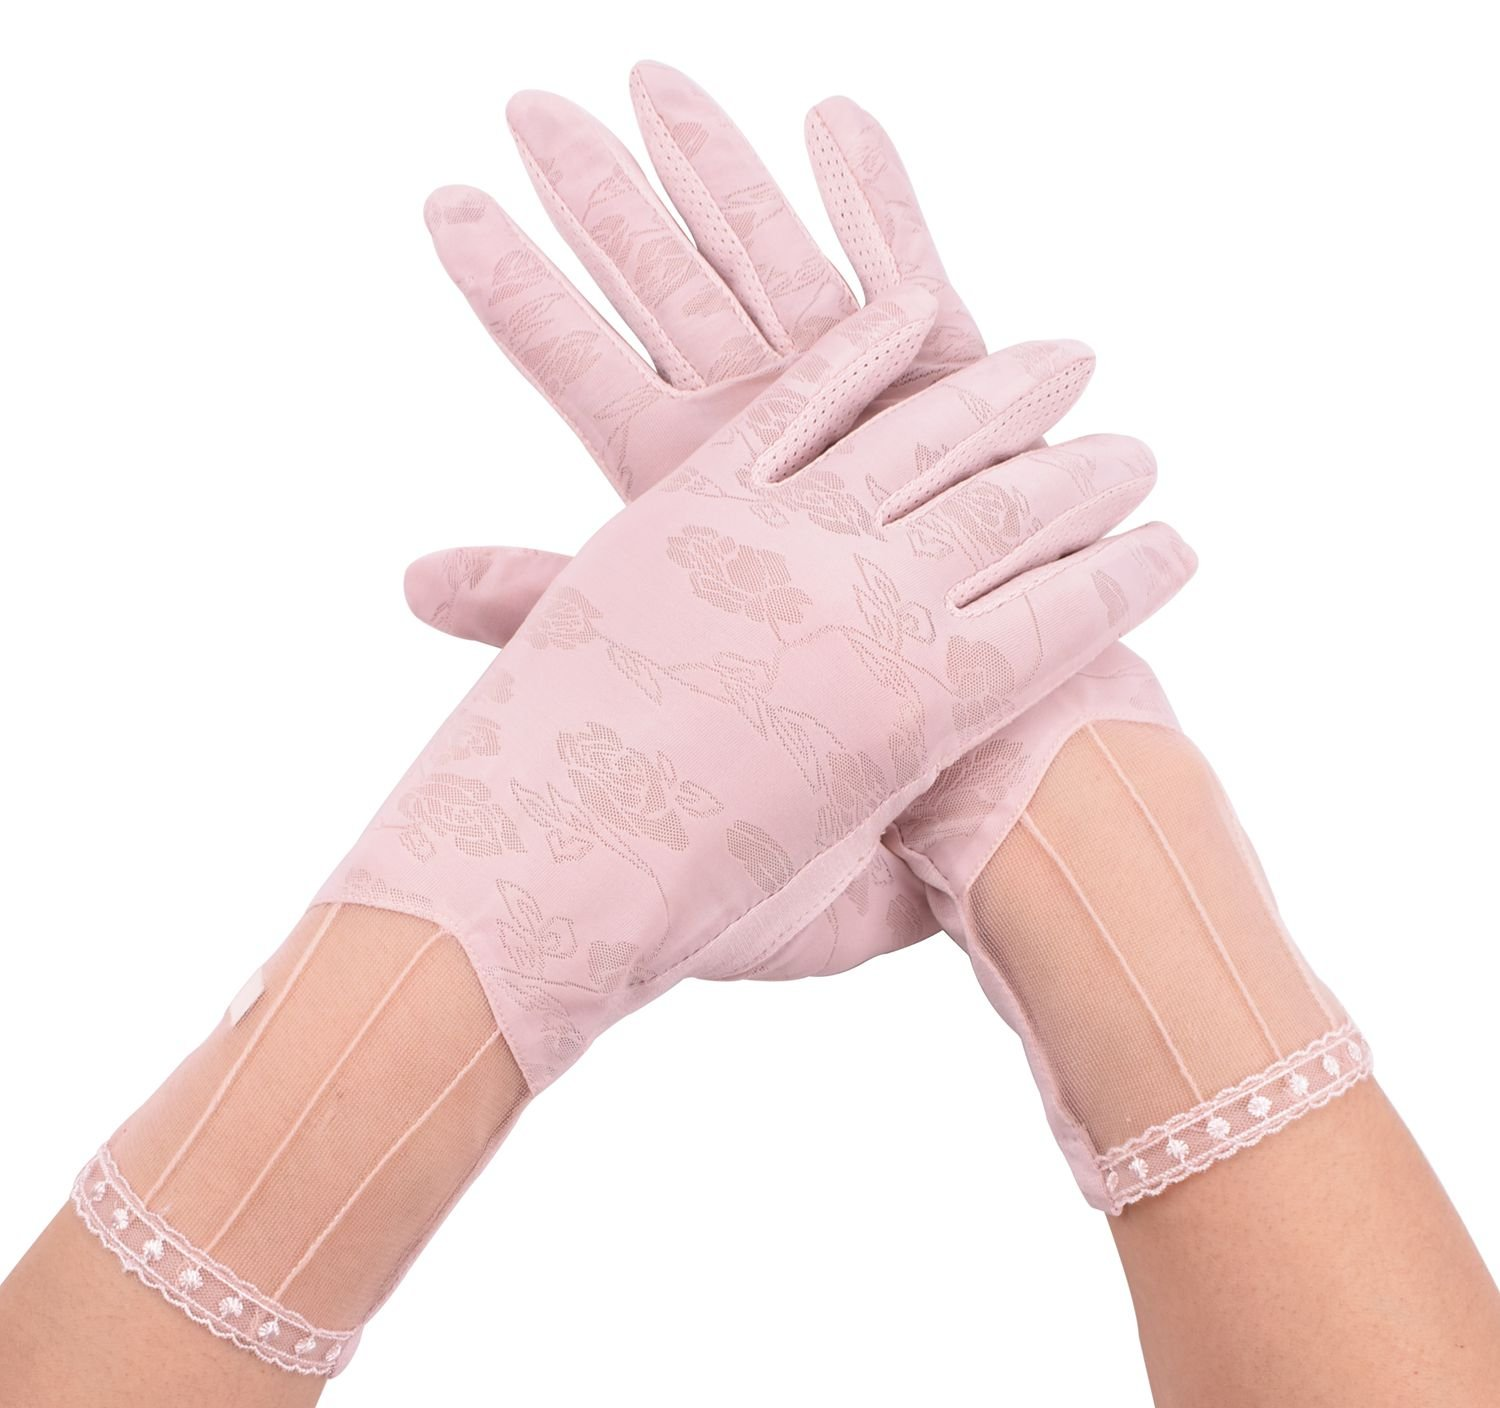 Slayco Women's Driving Gloves UV Protection Light Pink